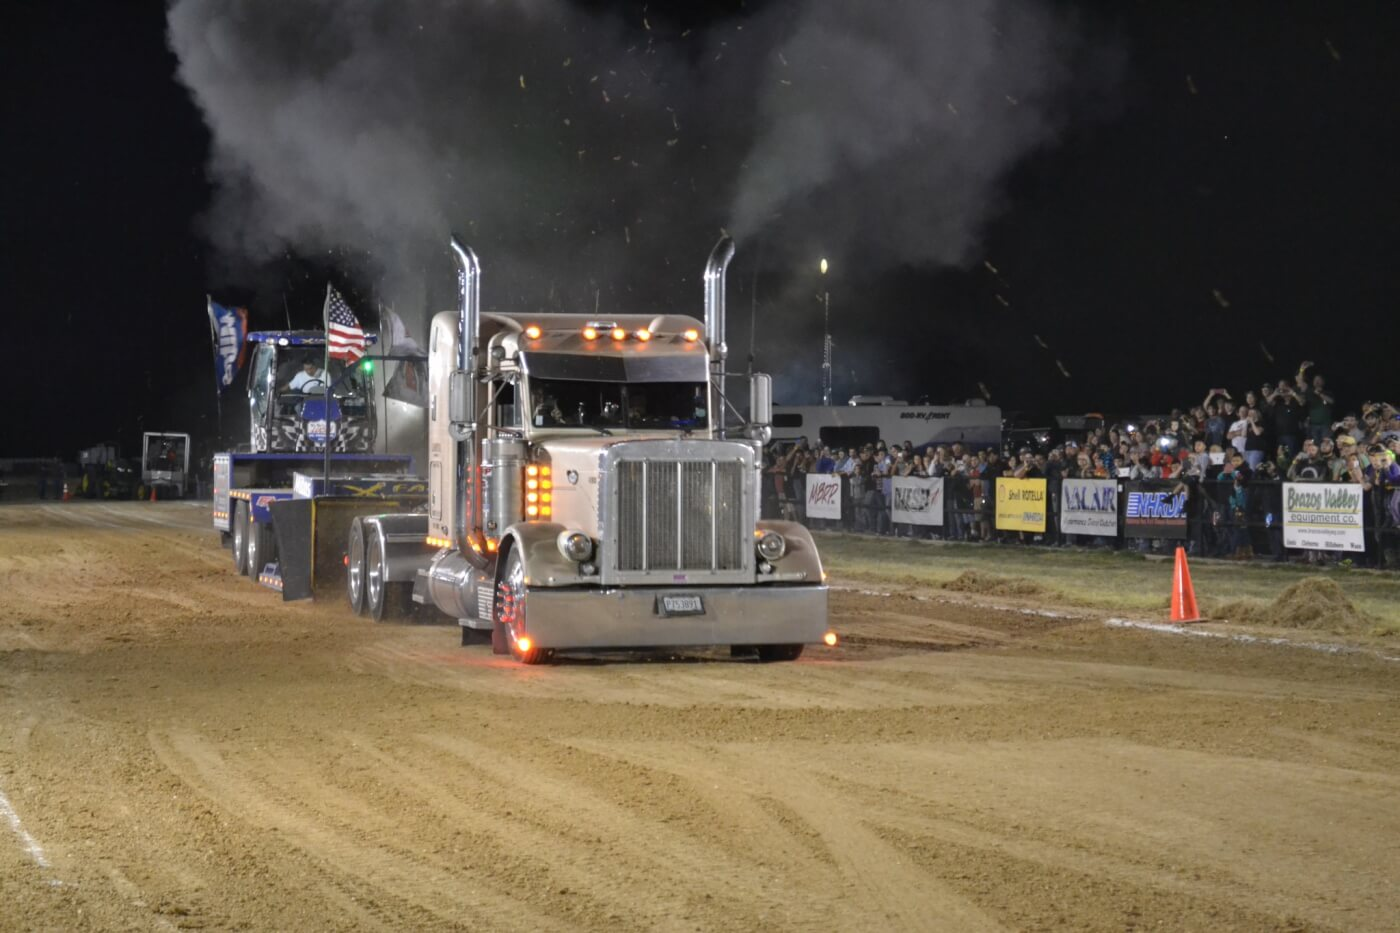 Modified semis got into the action at the World finals, with real work trucks like Rick Fenwick's gear-banging Peterbilt. Many drivers chose to shift two or three gears while heading down track, which made for quite the spectacle.